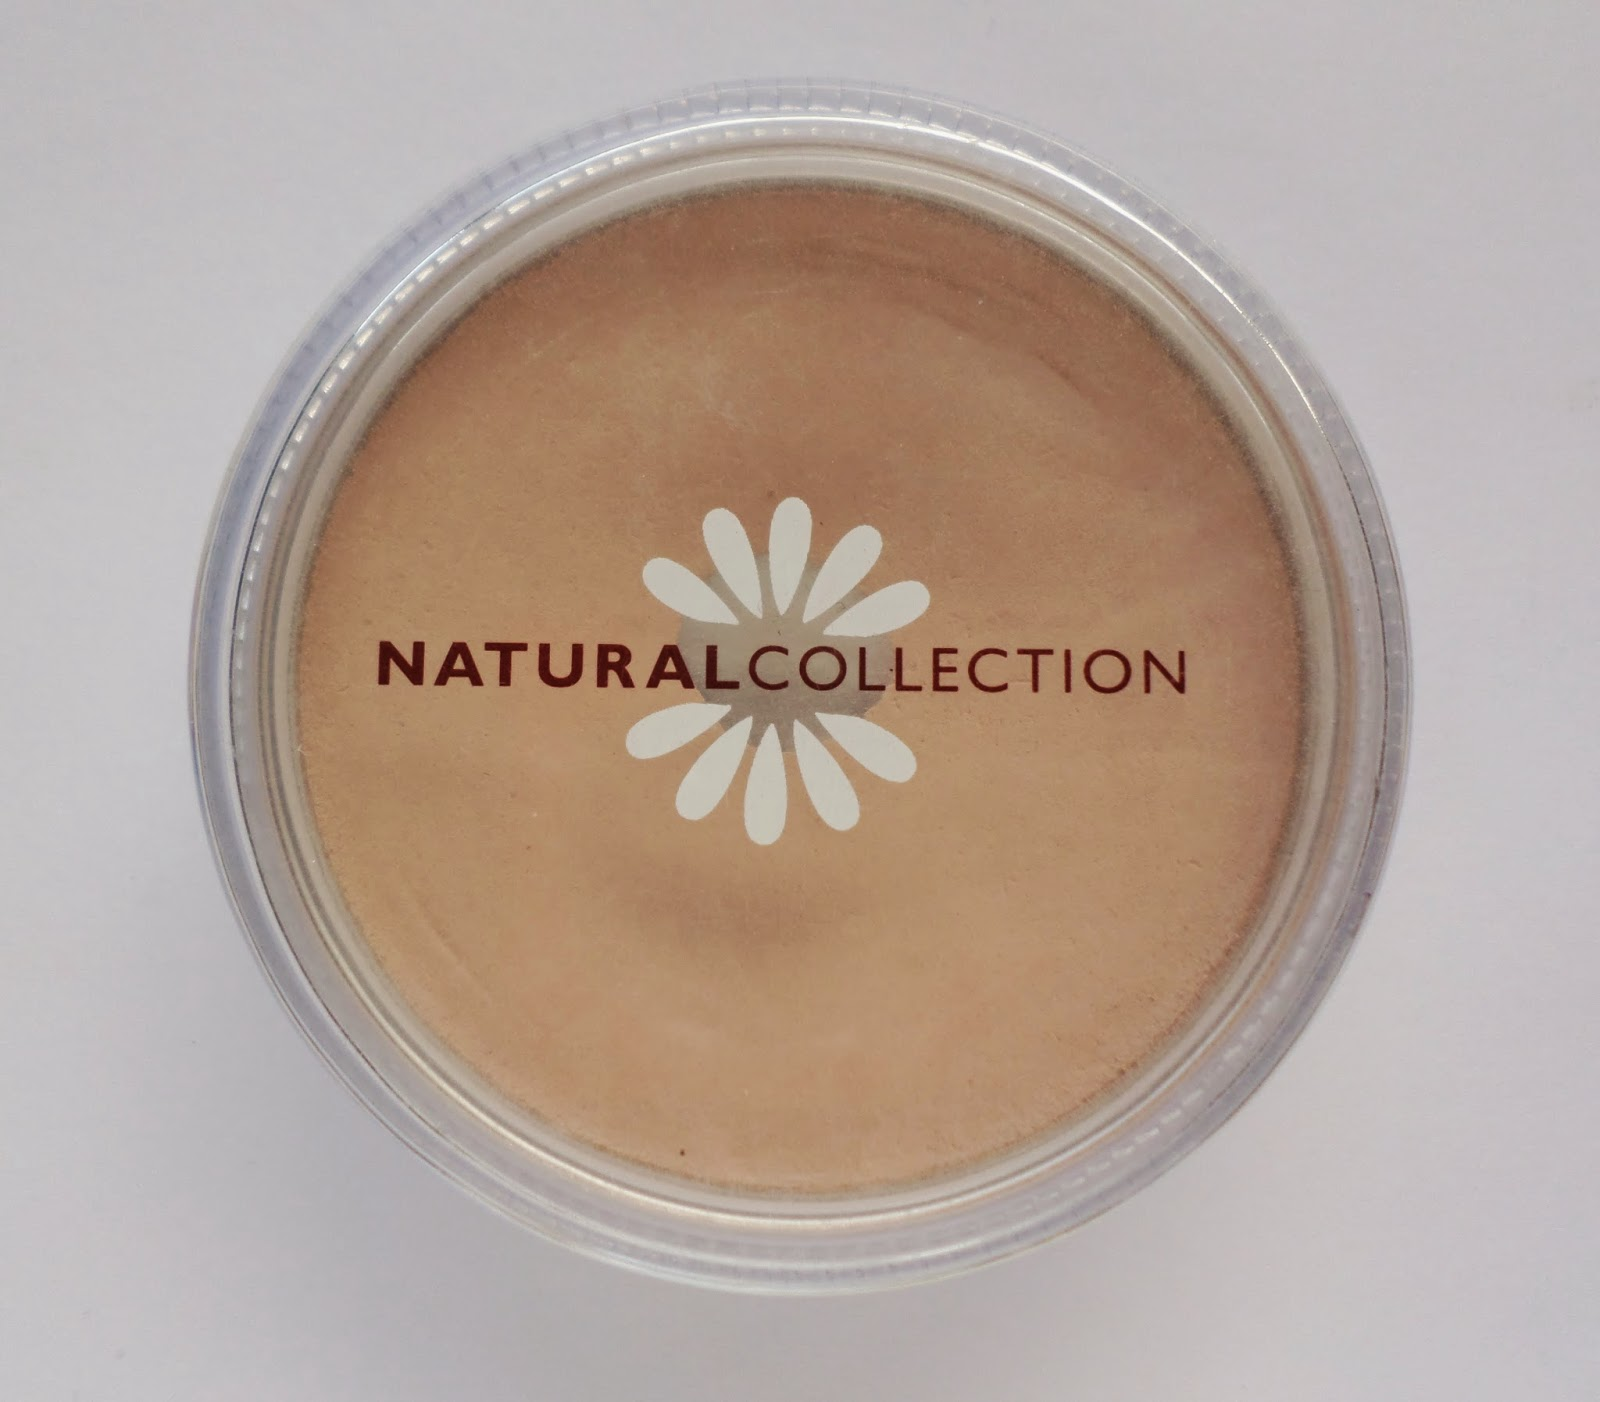 Natural Collection Pressed Powder in Cool Review